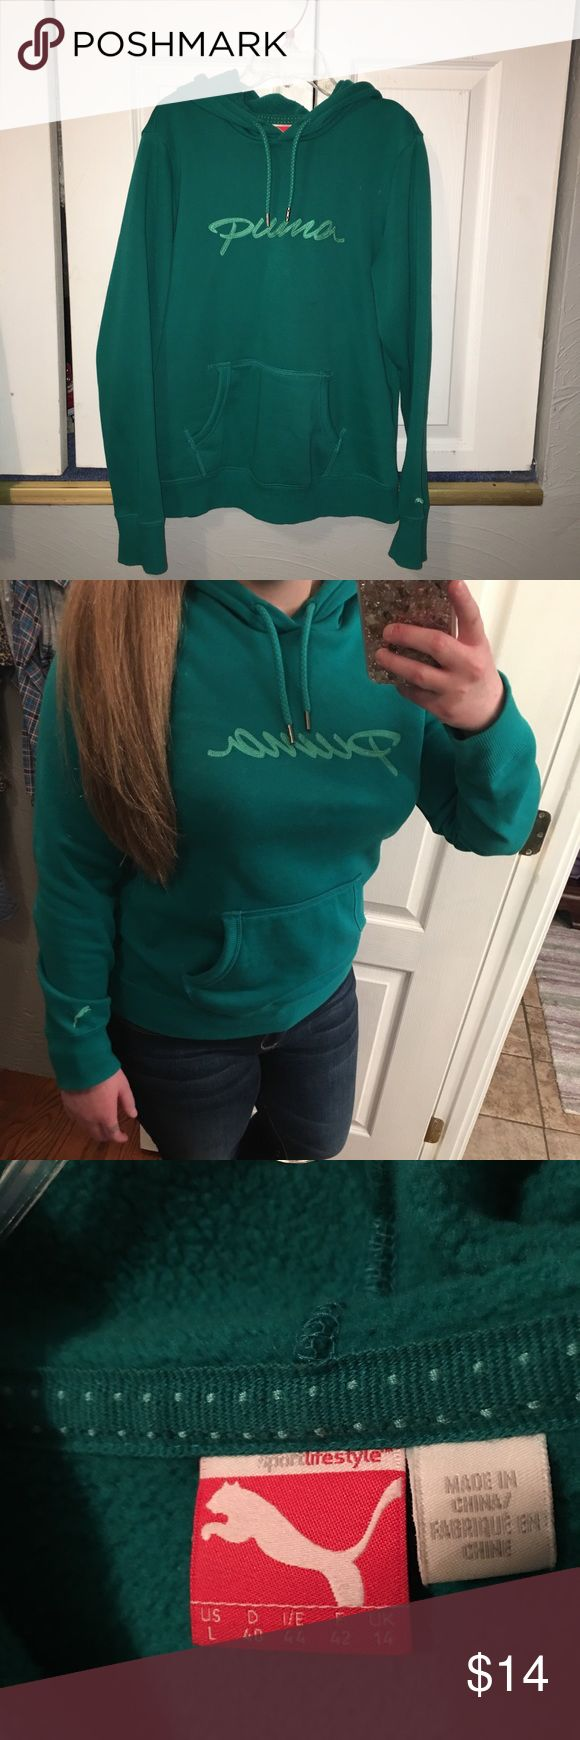 Puma Sweatshirt Rarely worn teal Puma sweatshirt! Cleaning out my closet and don't need it. In excellent condition and very cozy and sleek feeling! Please make reasonable offers and ask questions:) Puma Tops Sweatshirts & Hoodies